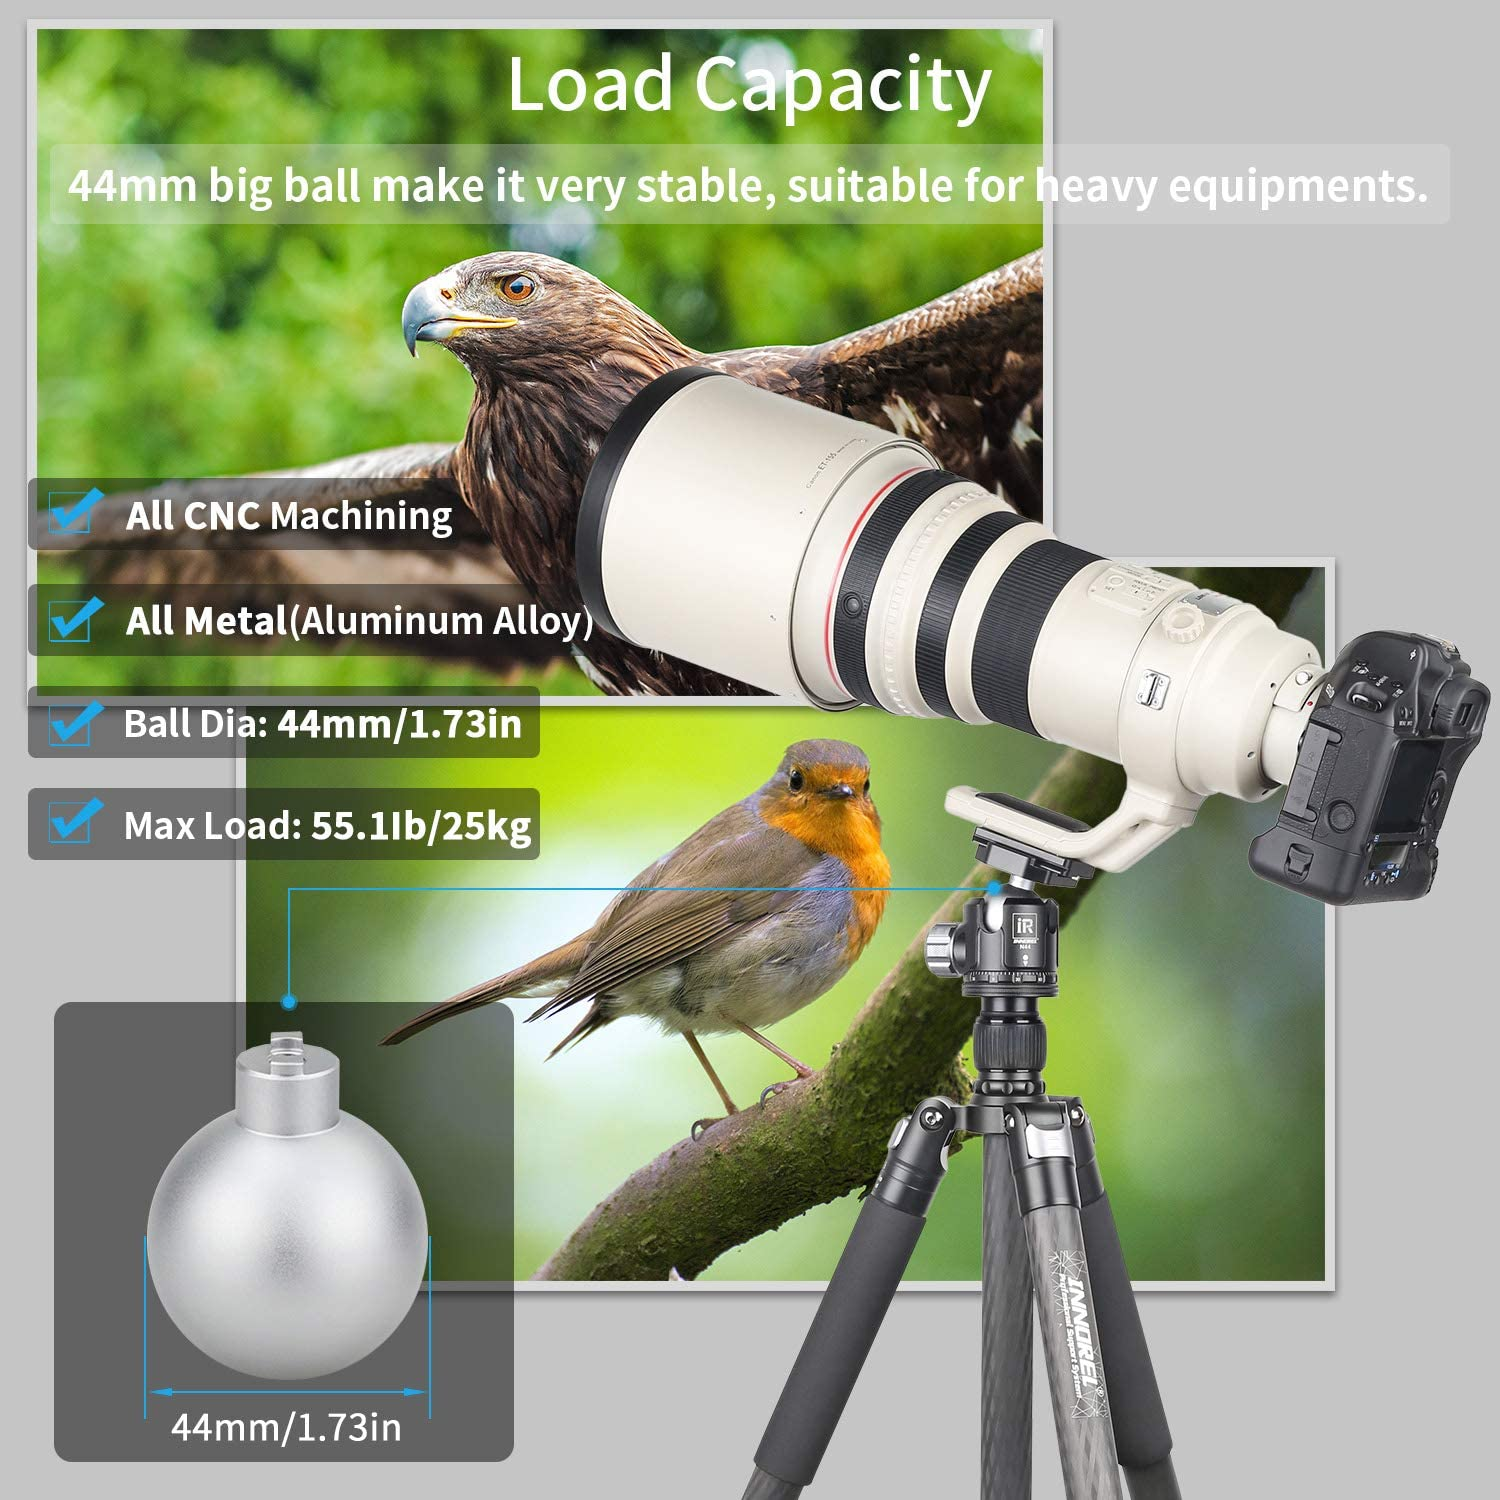 Low Profile Ball Head All Metal Tripod Ball Head INNOREL Panoramic CNC Ball Heads Camera Mount with Two 1//4 Quick Release Plates for Tripod Camcorder Telescope,Max Load 44lbs//20kg DSLR